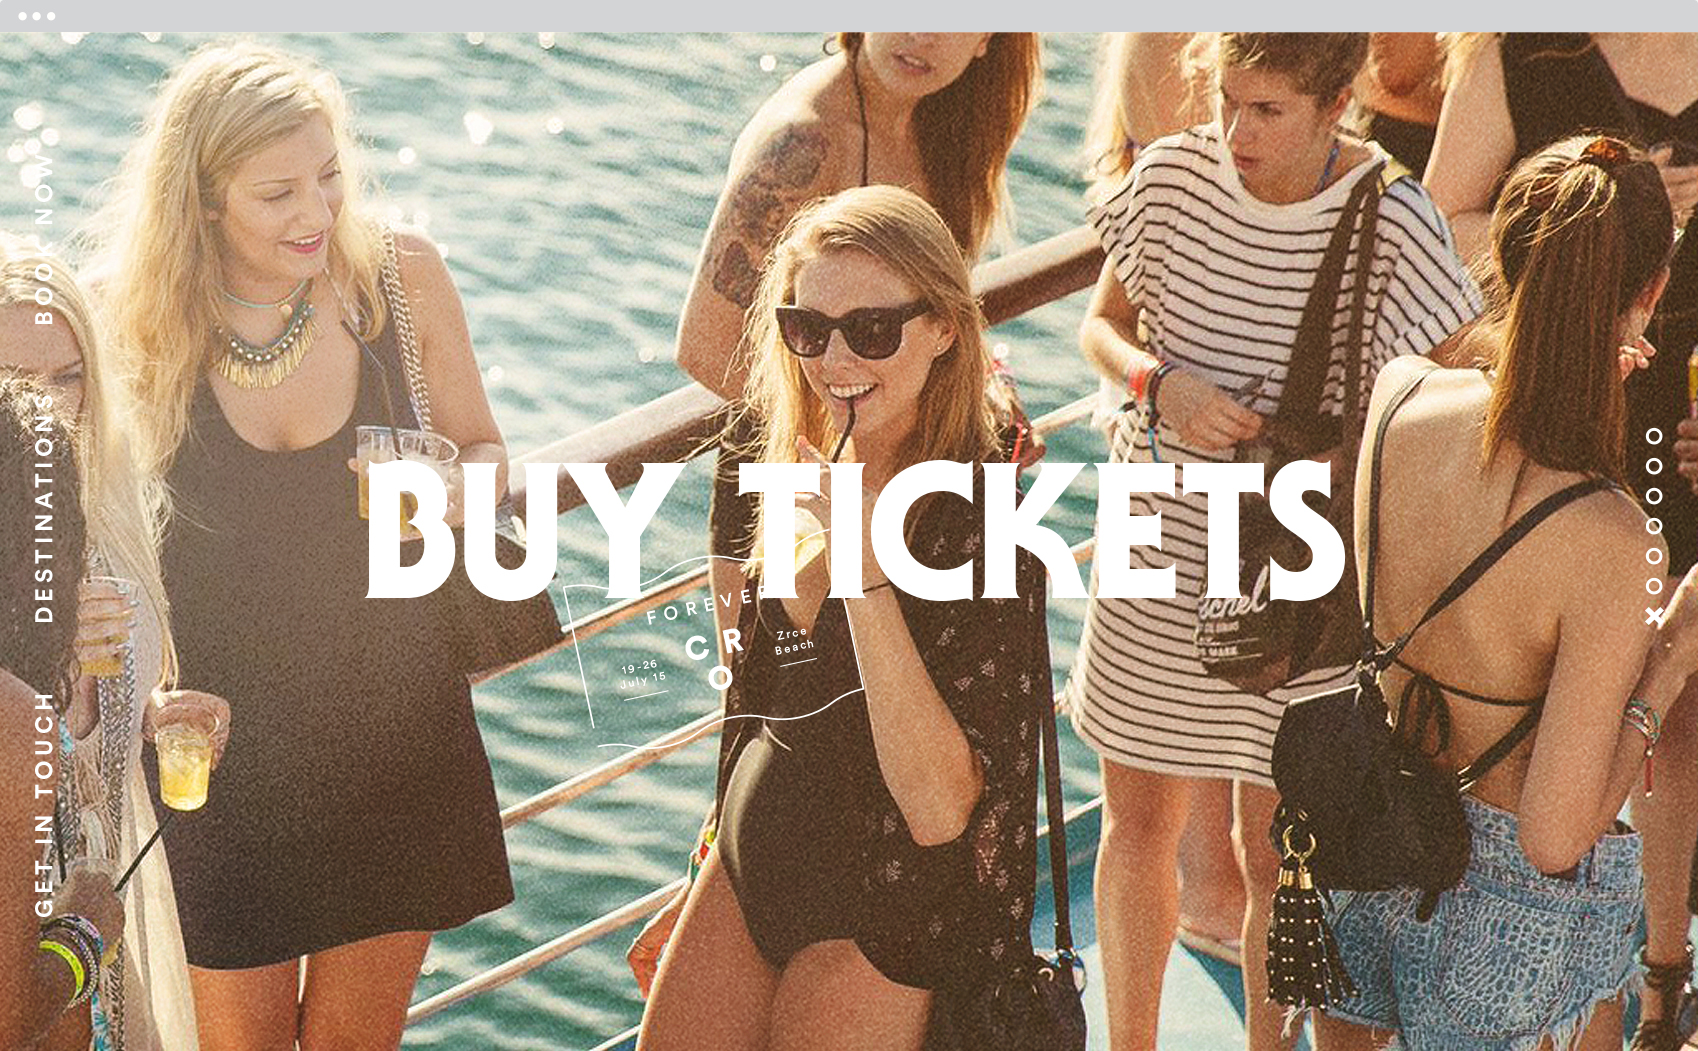 tickets page